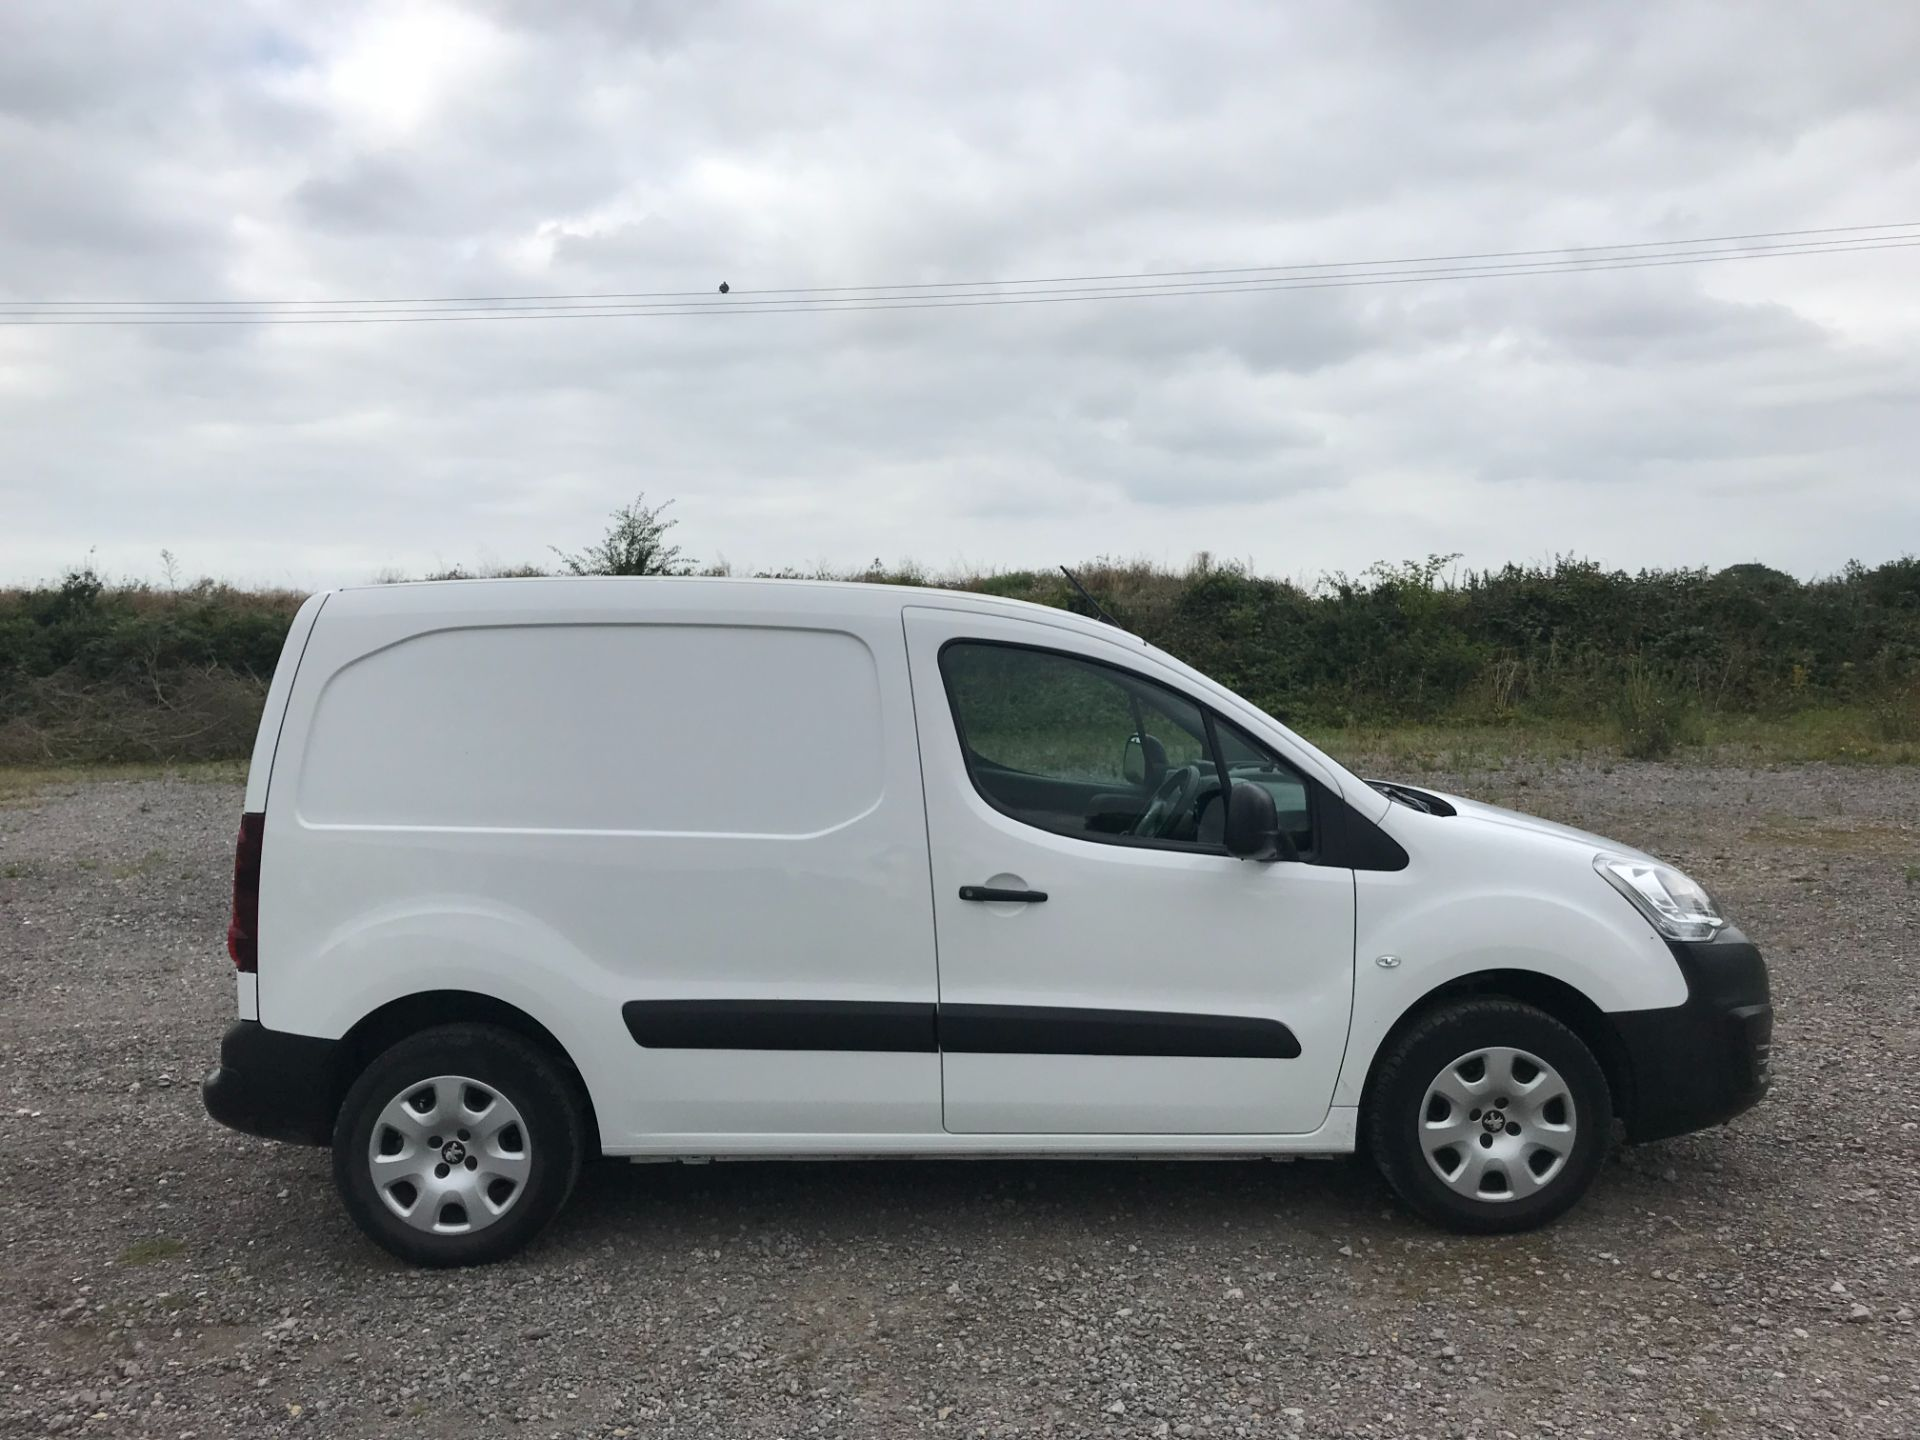 2017 Peugeot Partner L1 850 1.6 BLUEHDI 100 PROFESSIONAL (NON S/S)EURO 6 *Limited to 70MPH* (NV17SYO) Image 7